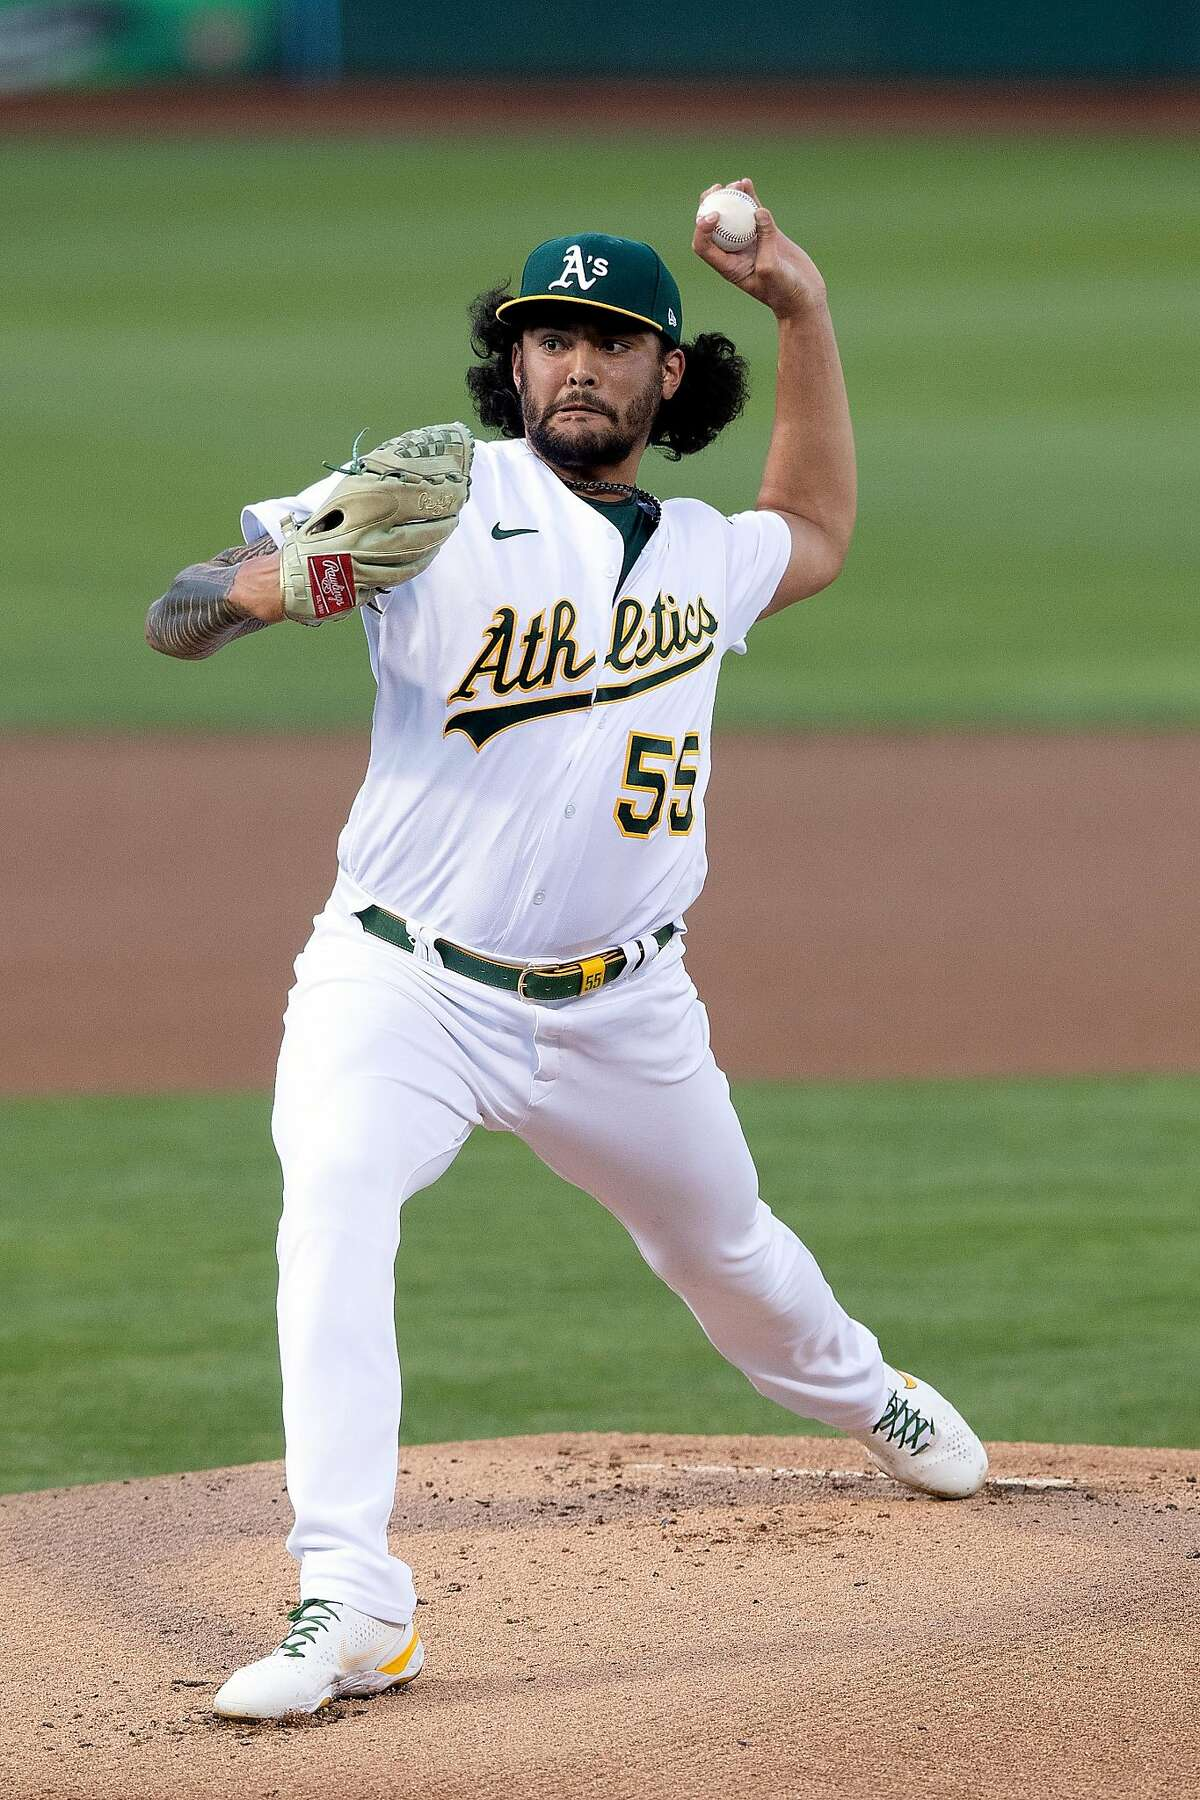 Sean Manaea took a no-hit bid into the eighth, but Mike Brosseau's double ended it.